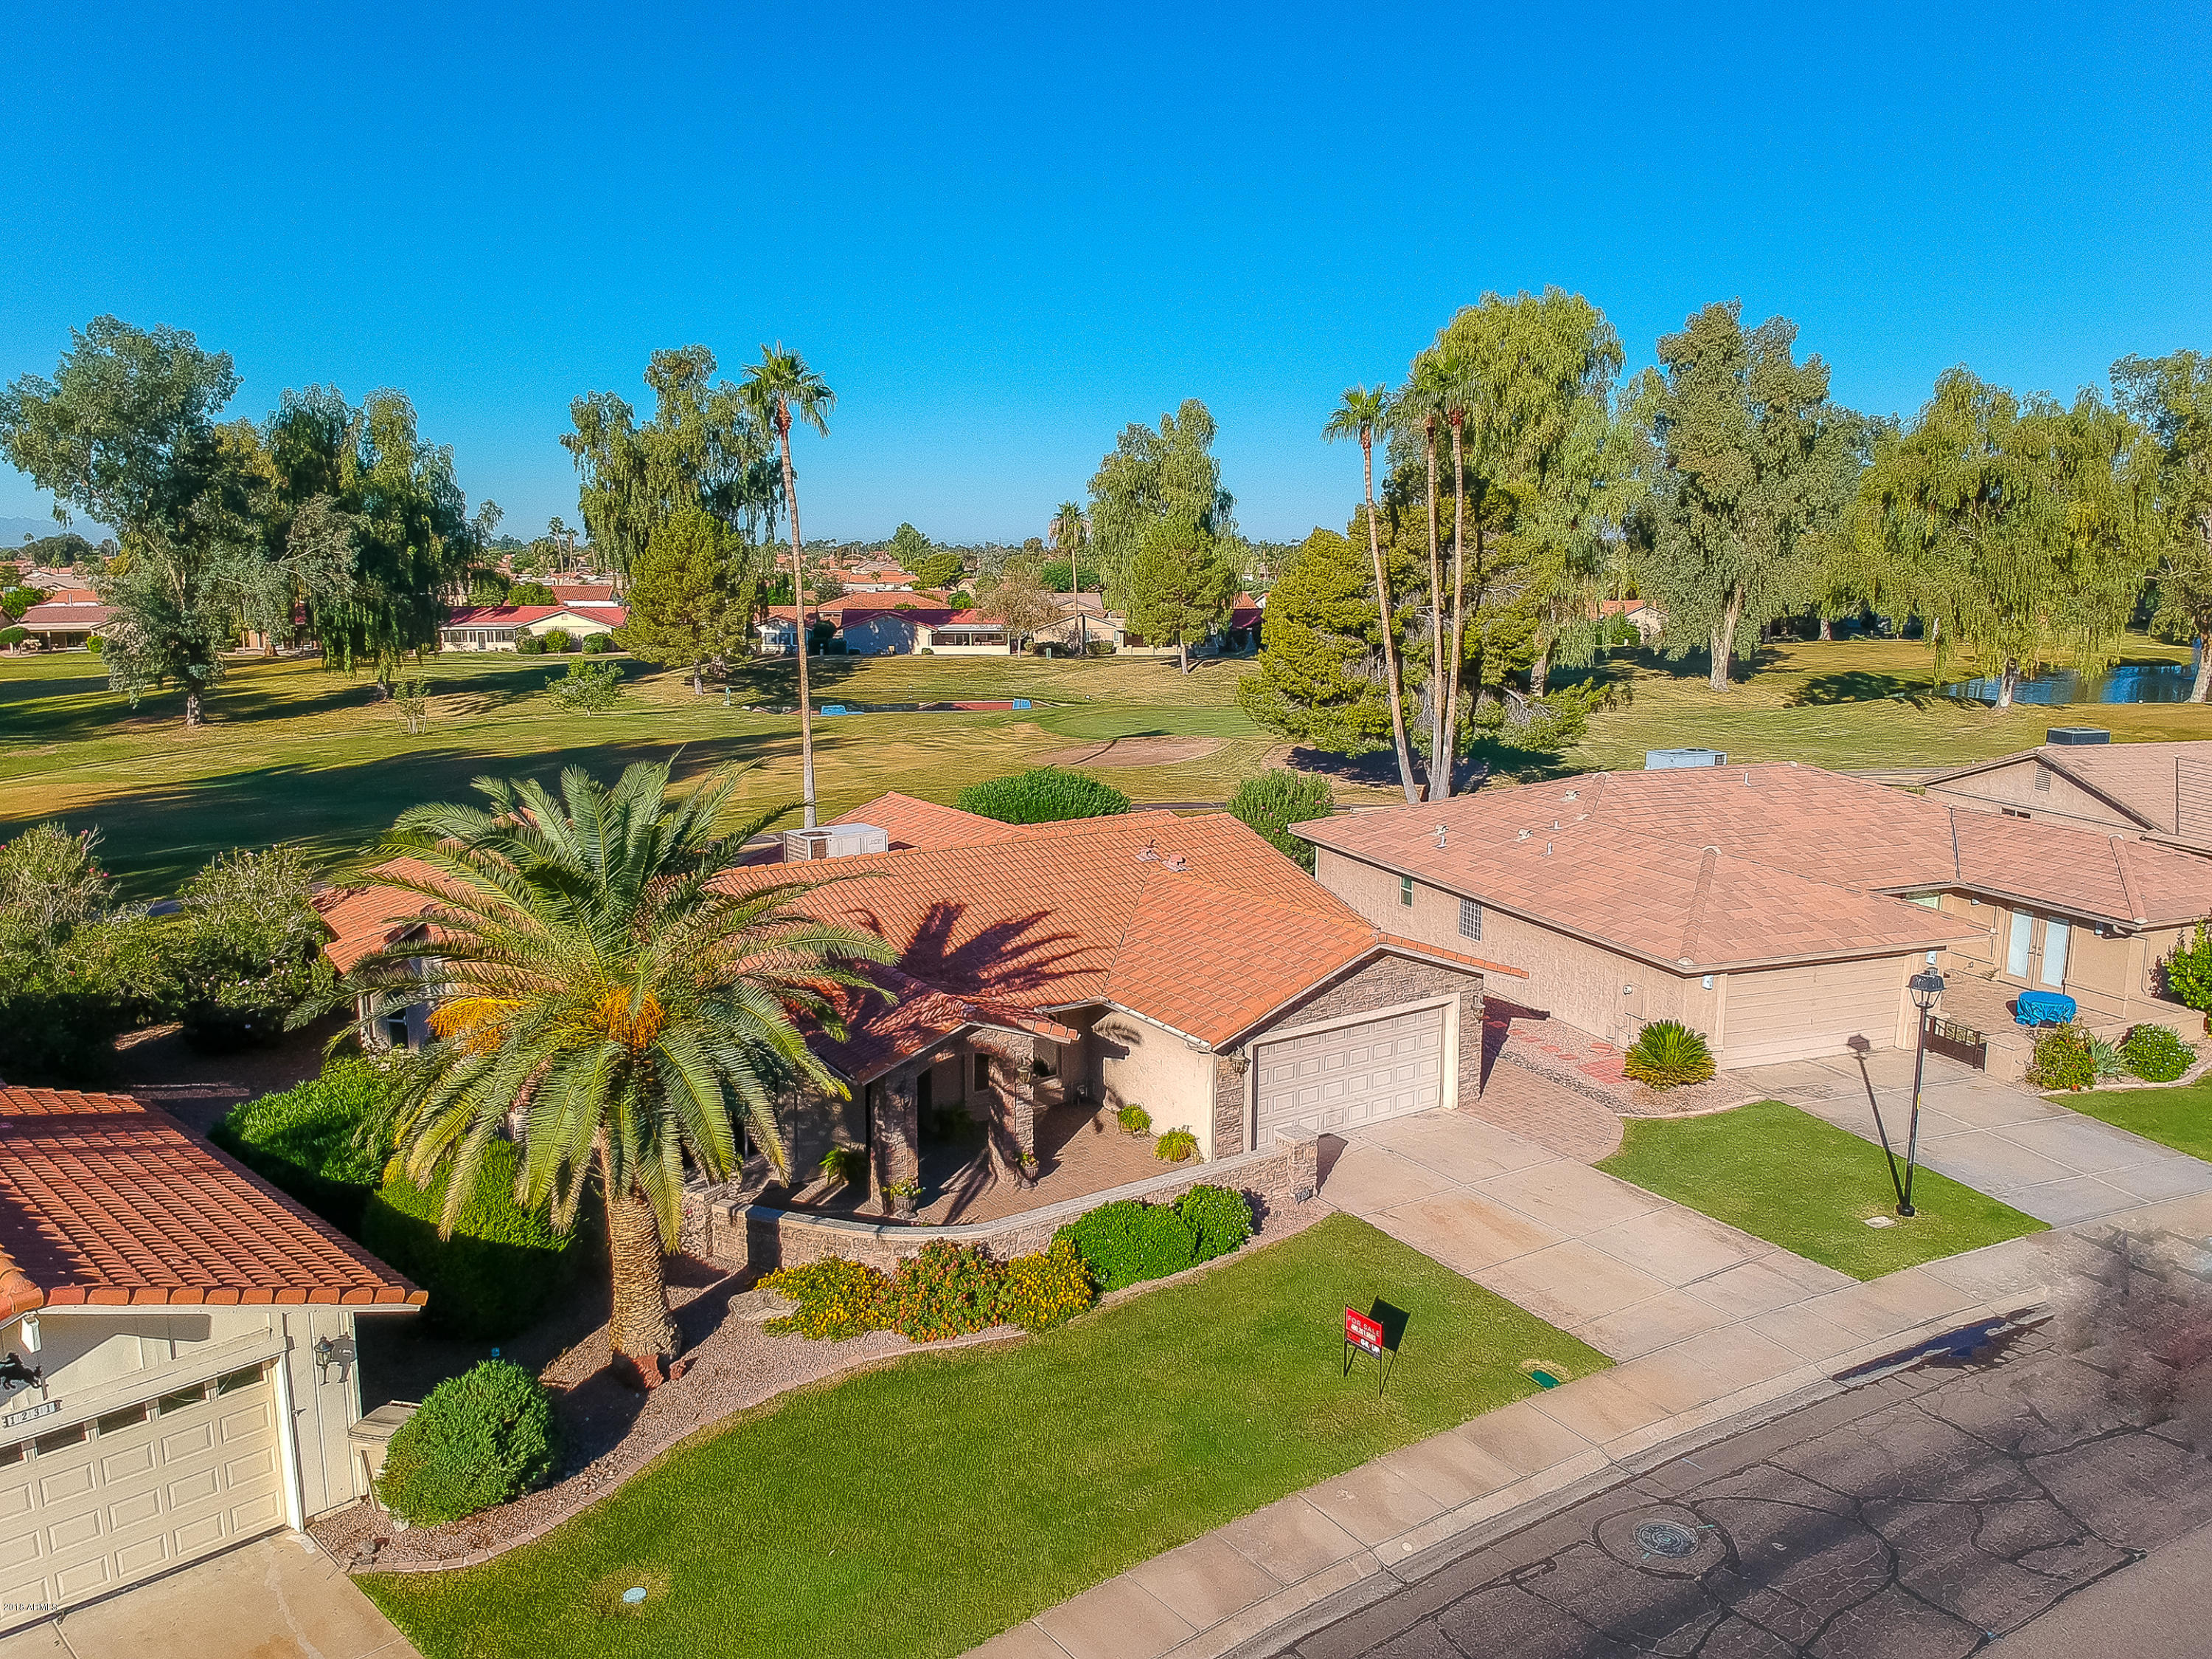 MLS 5839016 1233 LEISURE WORLD --, Mesa, AZ 85206